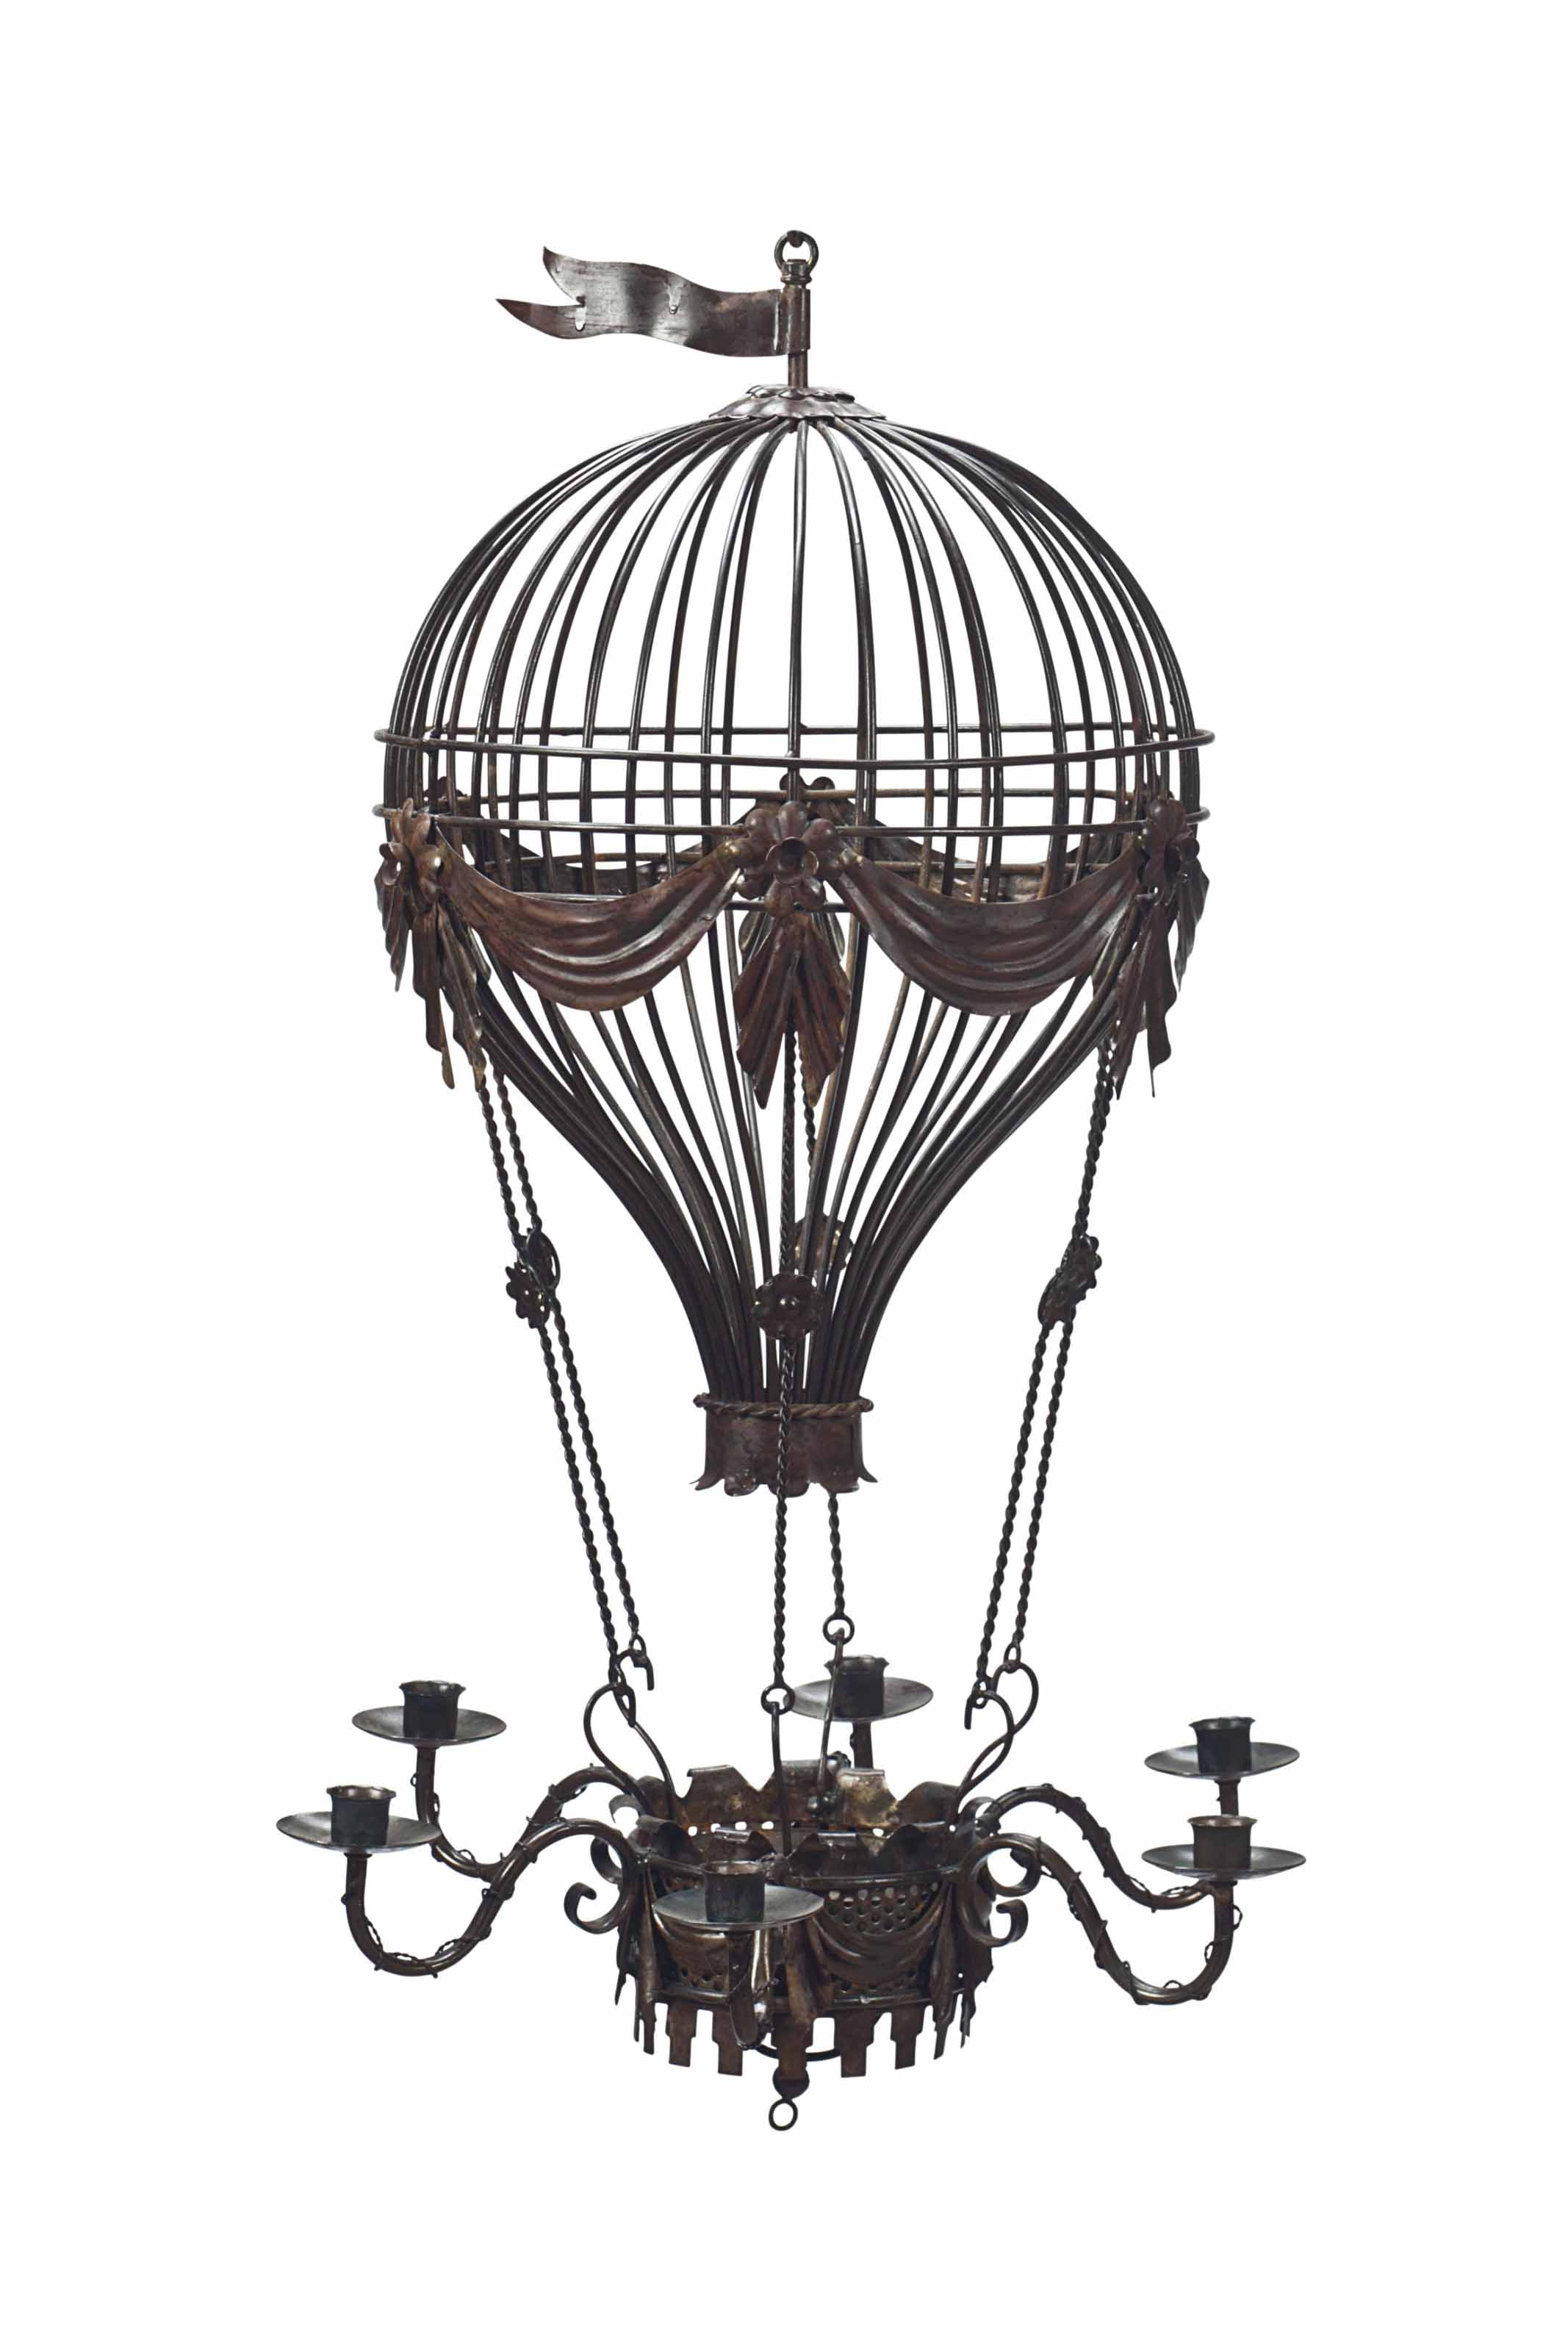 surrounded unique light image sea home balloon idea renishaw exclusive attempt sets chandelier for hot record high sights lovely by courtesy air of world ballooning